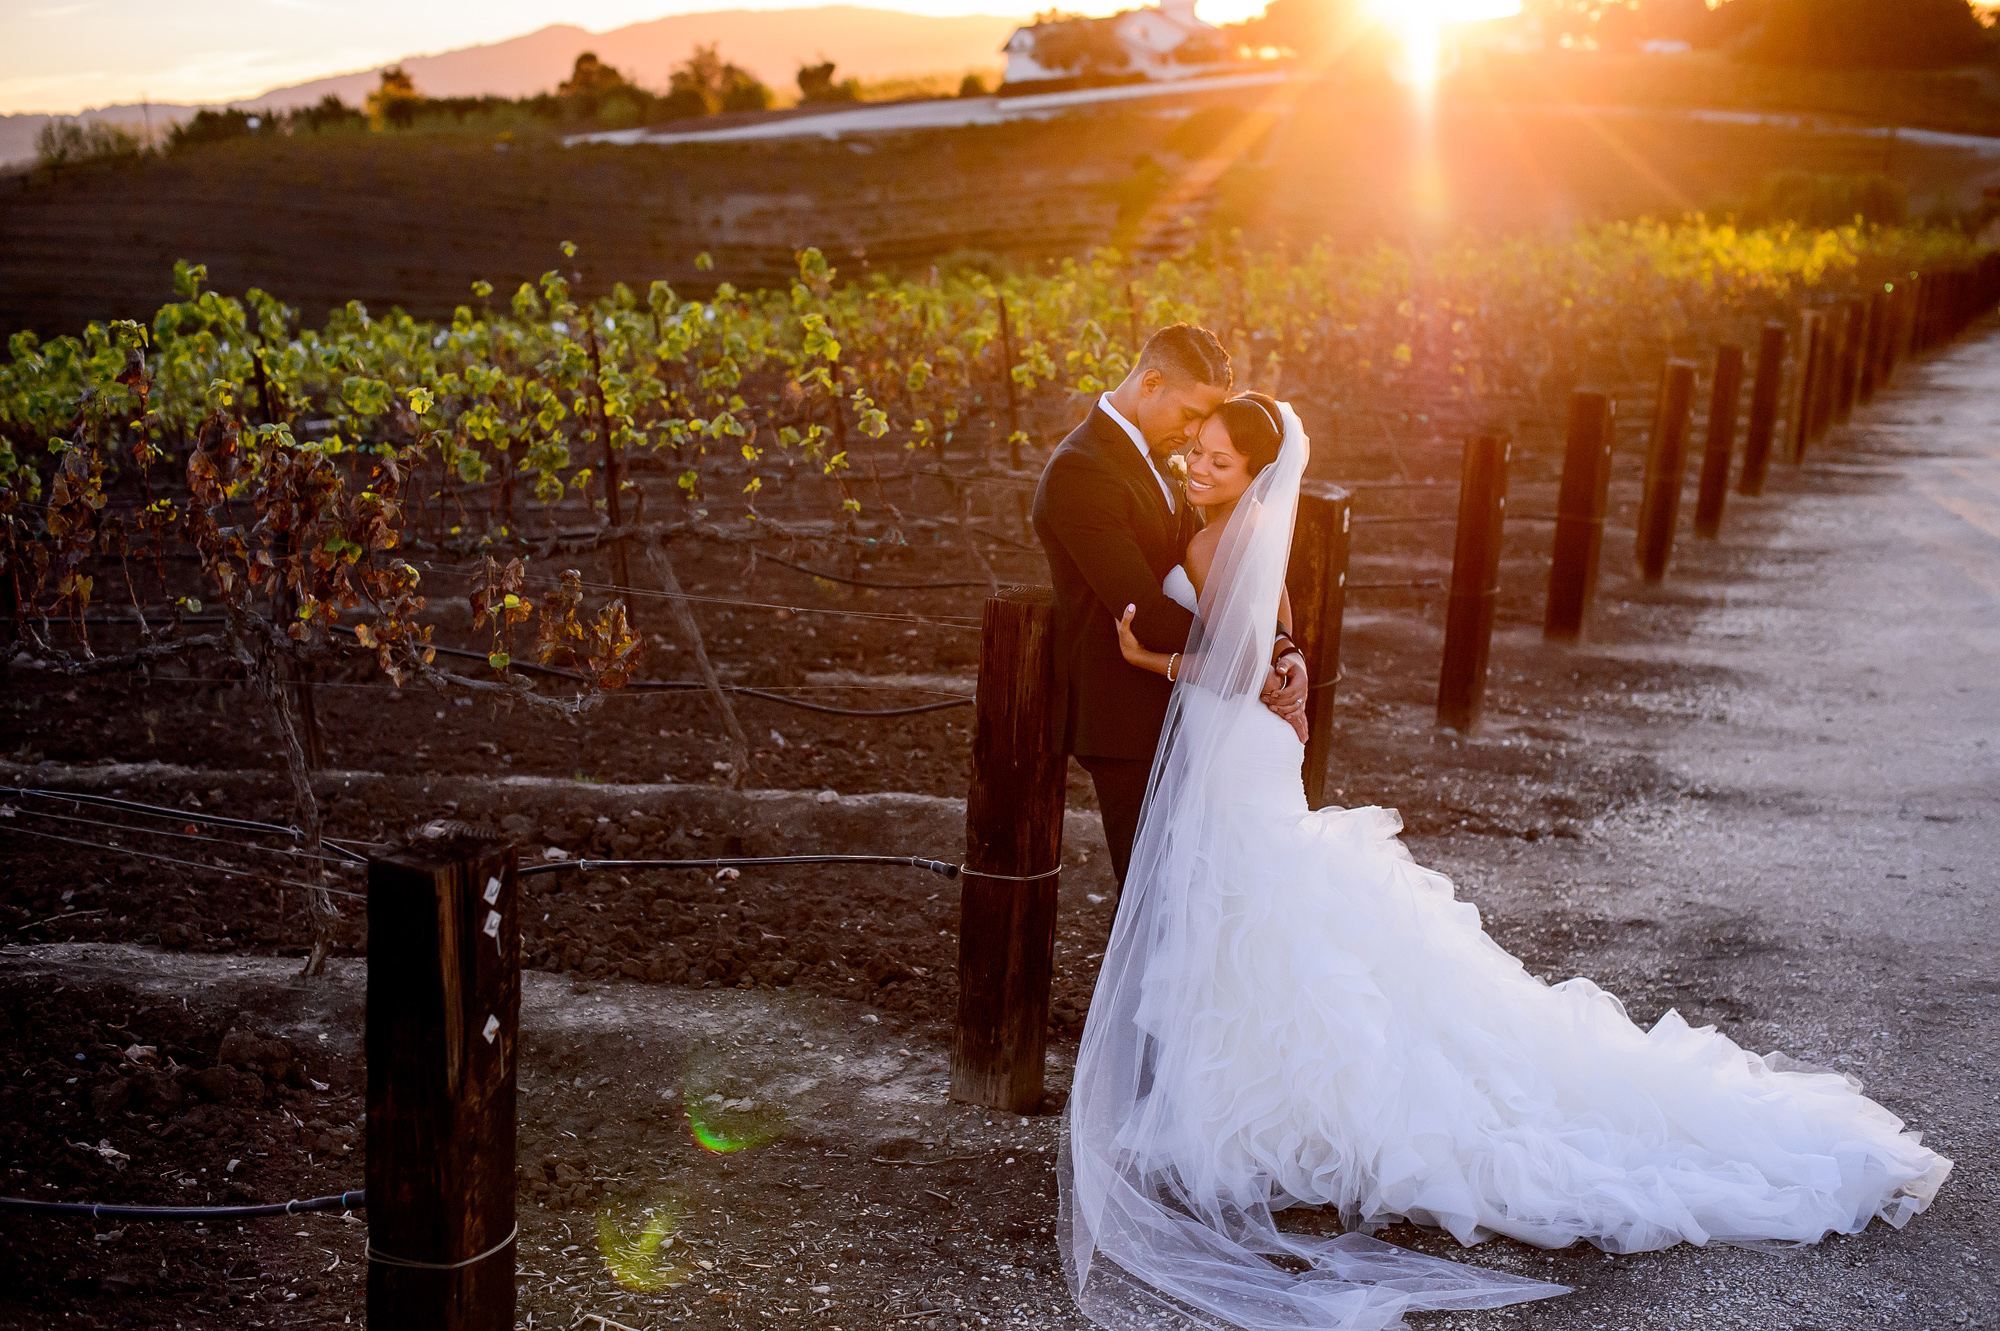 late-afternoon-couple-portrait-in-vineyard-bride-wearing-trumpet-gown-joshua-dwain-photography